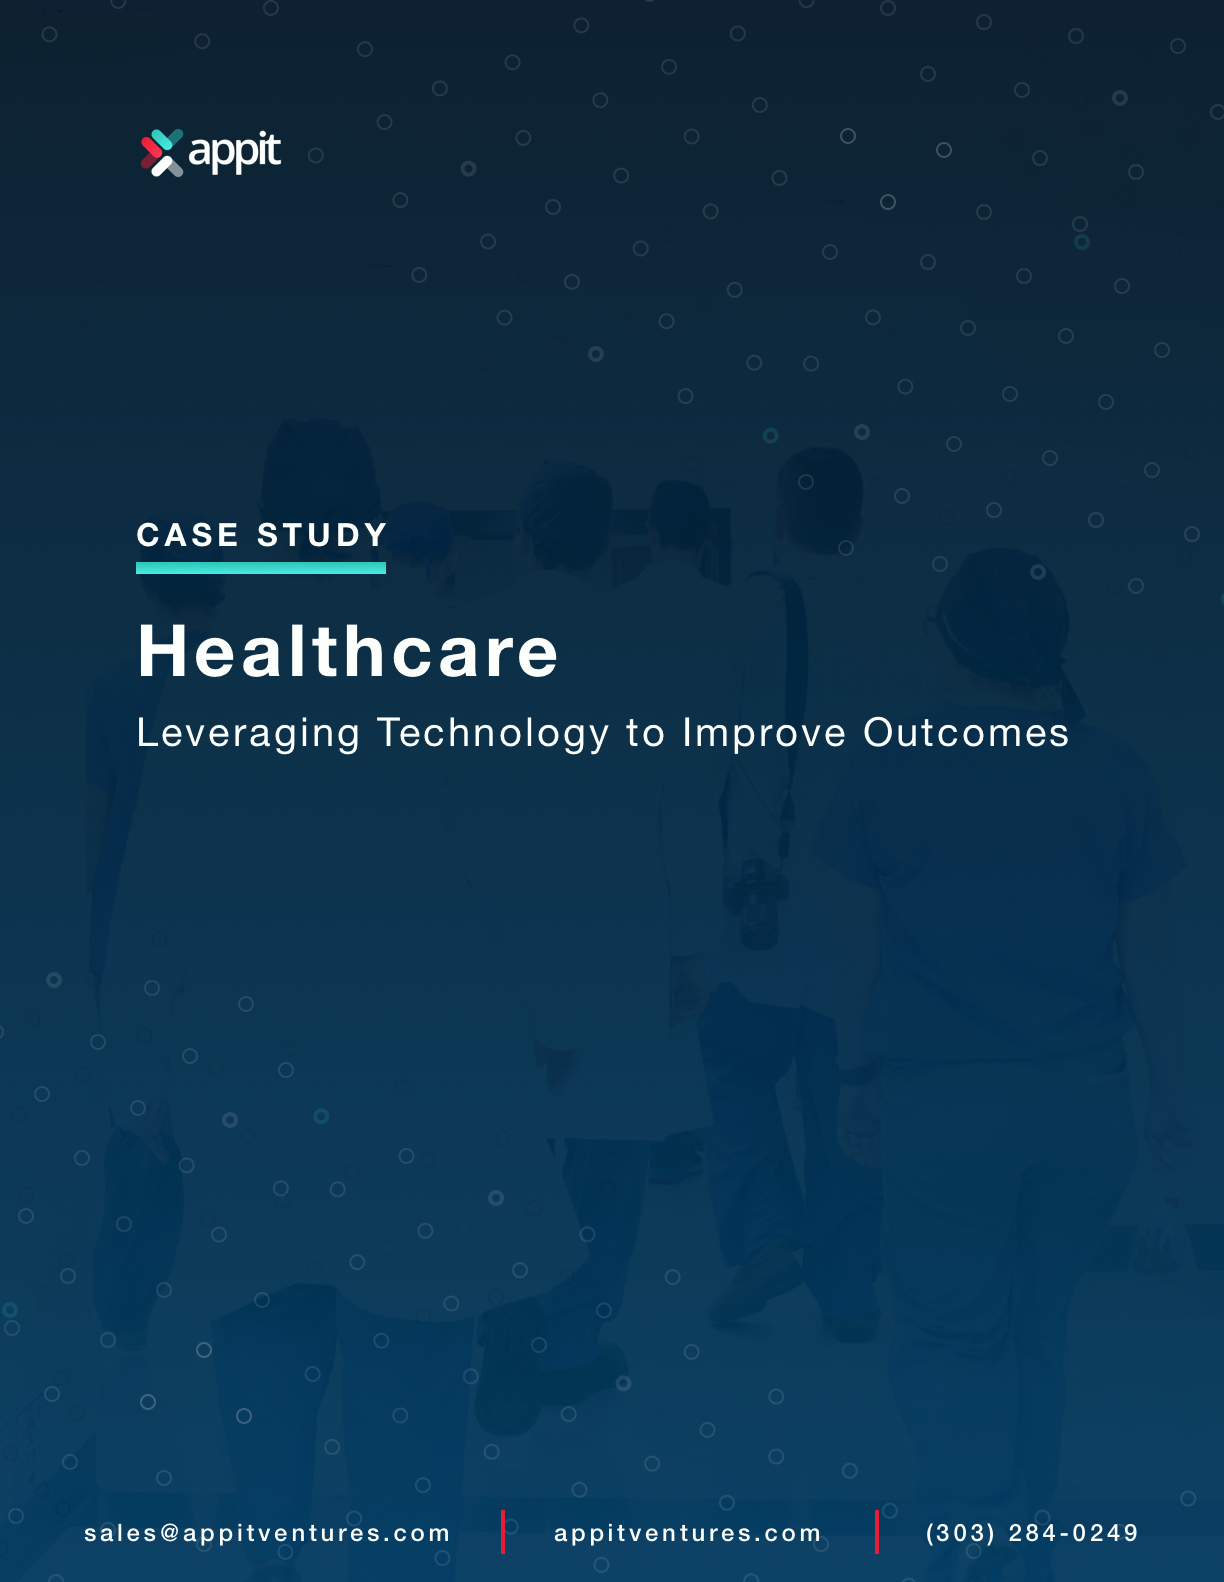 Healthcare Case Study Front Cover